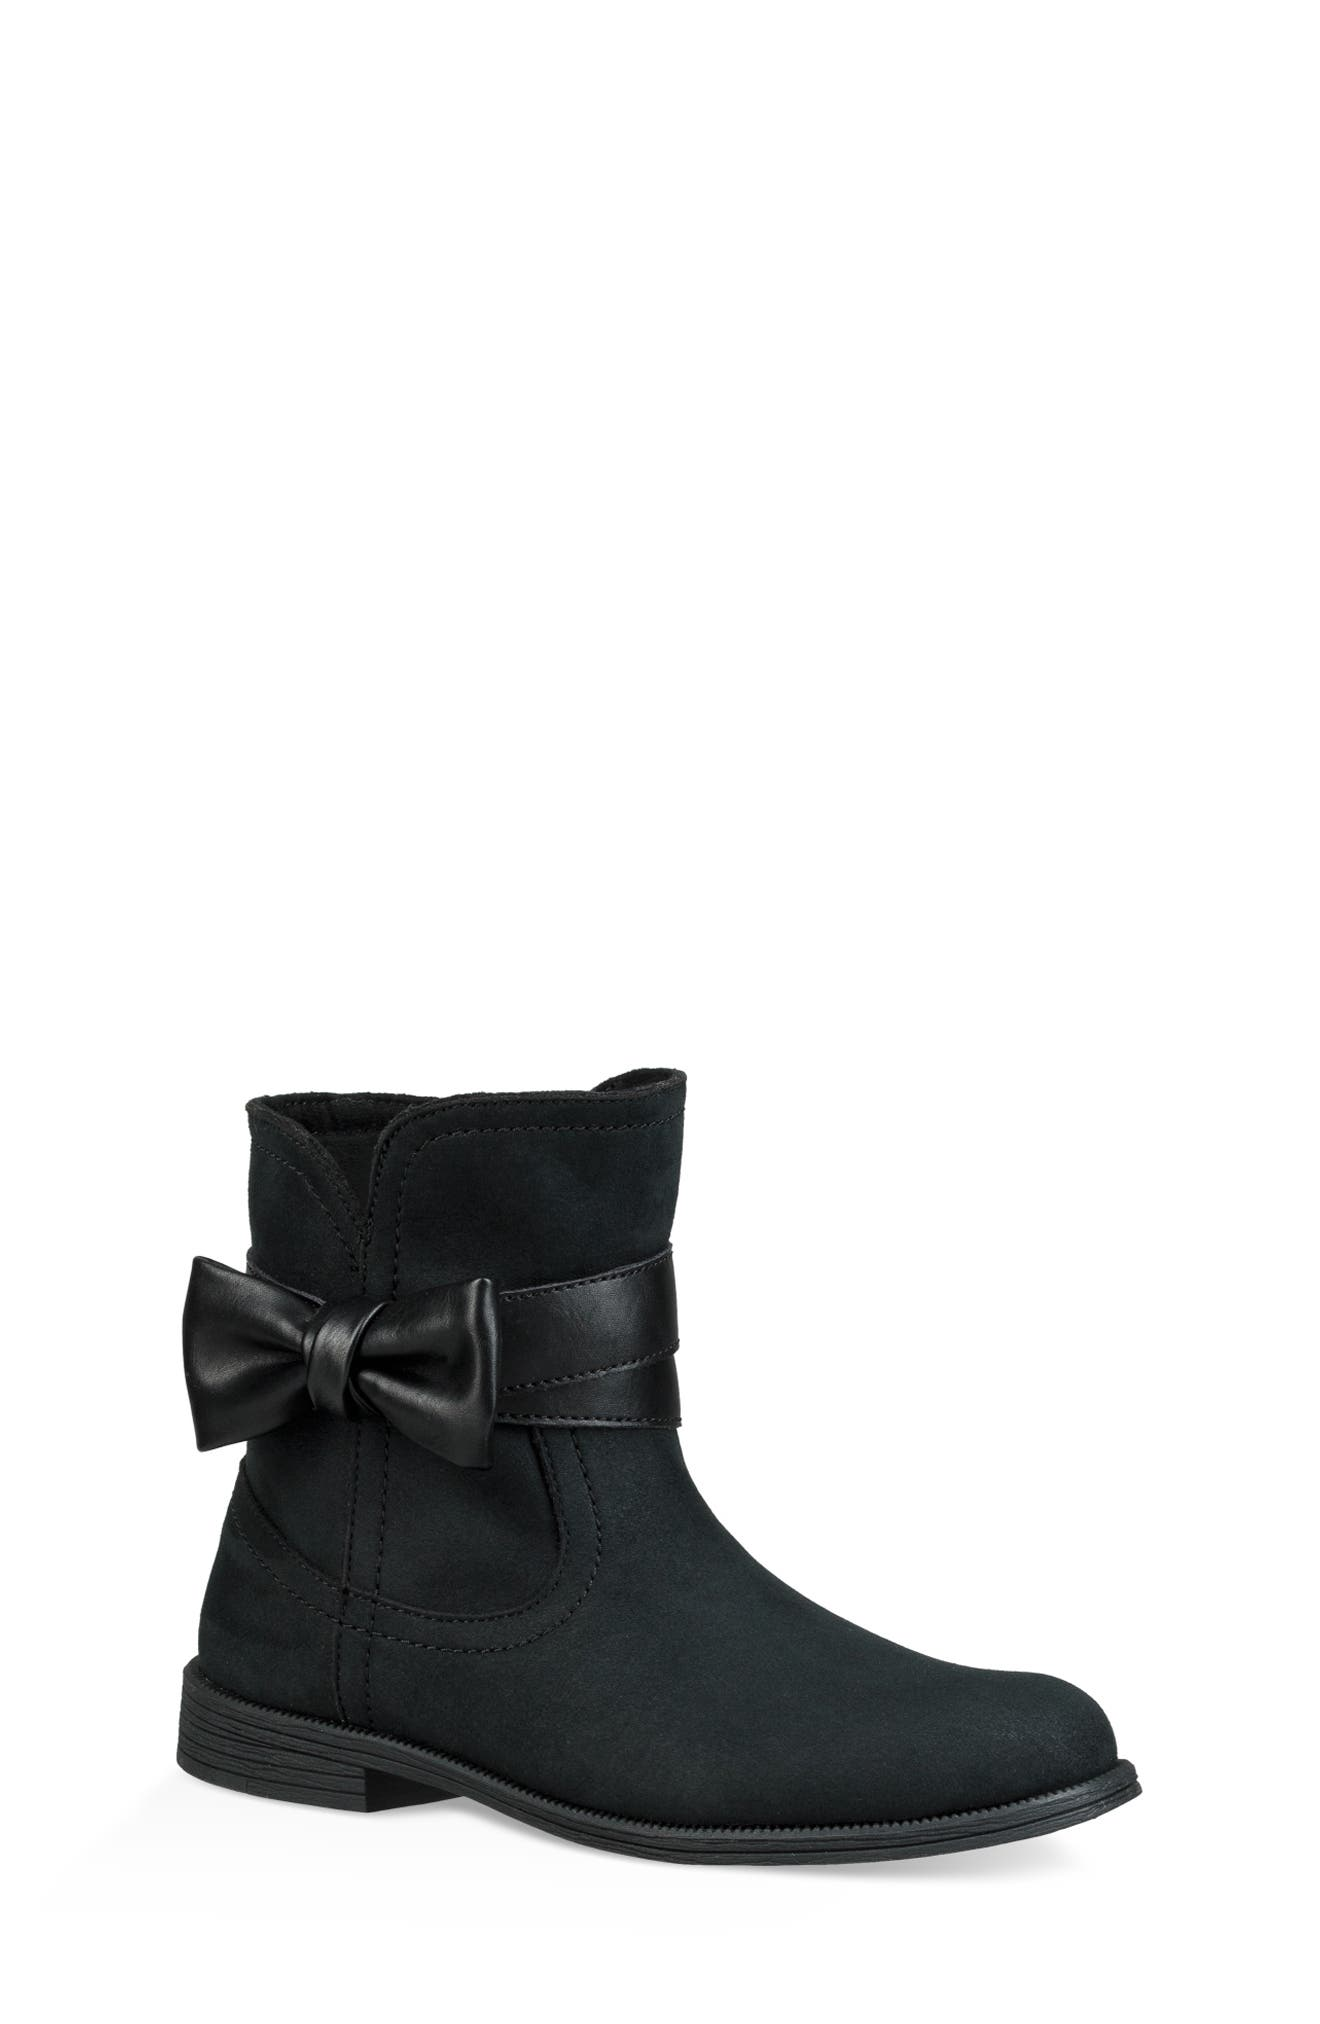 UGG Joanie Bow Boot,                         Main,                         color, BLACK